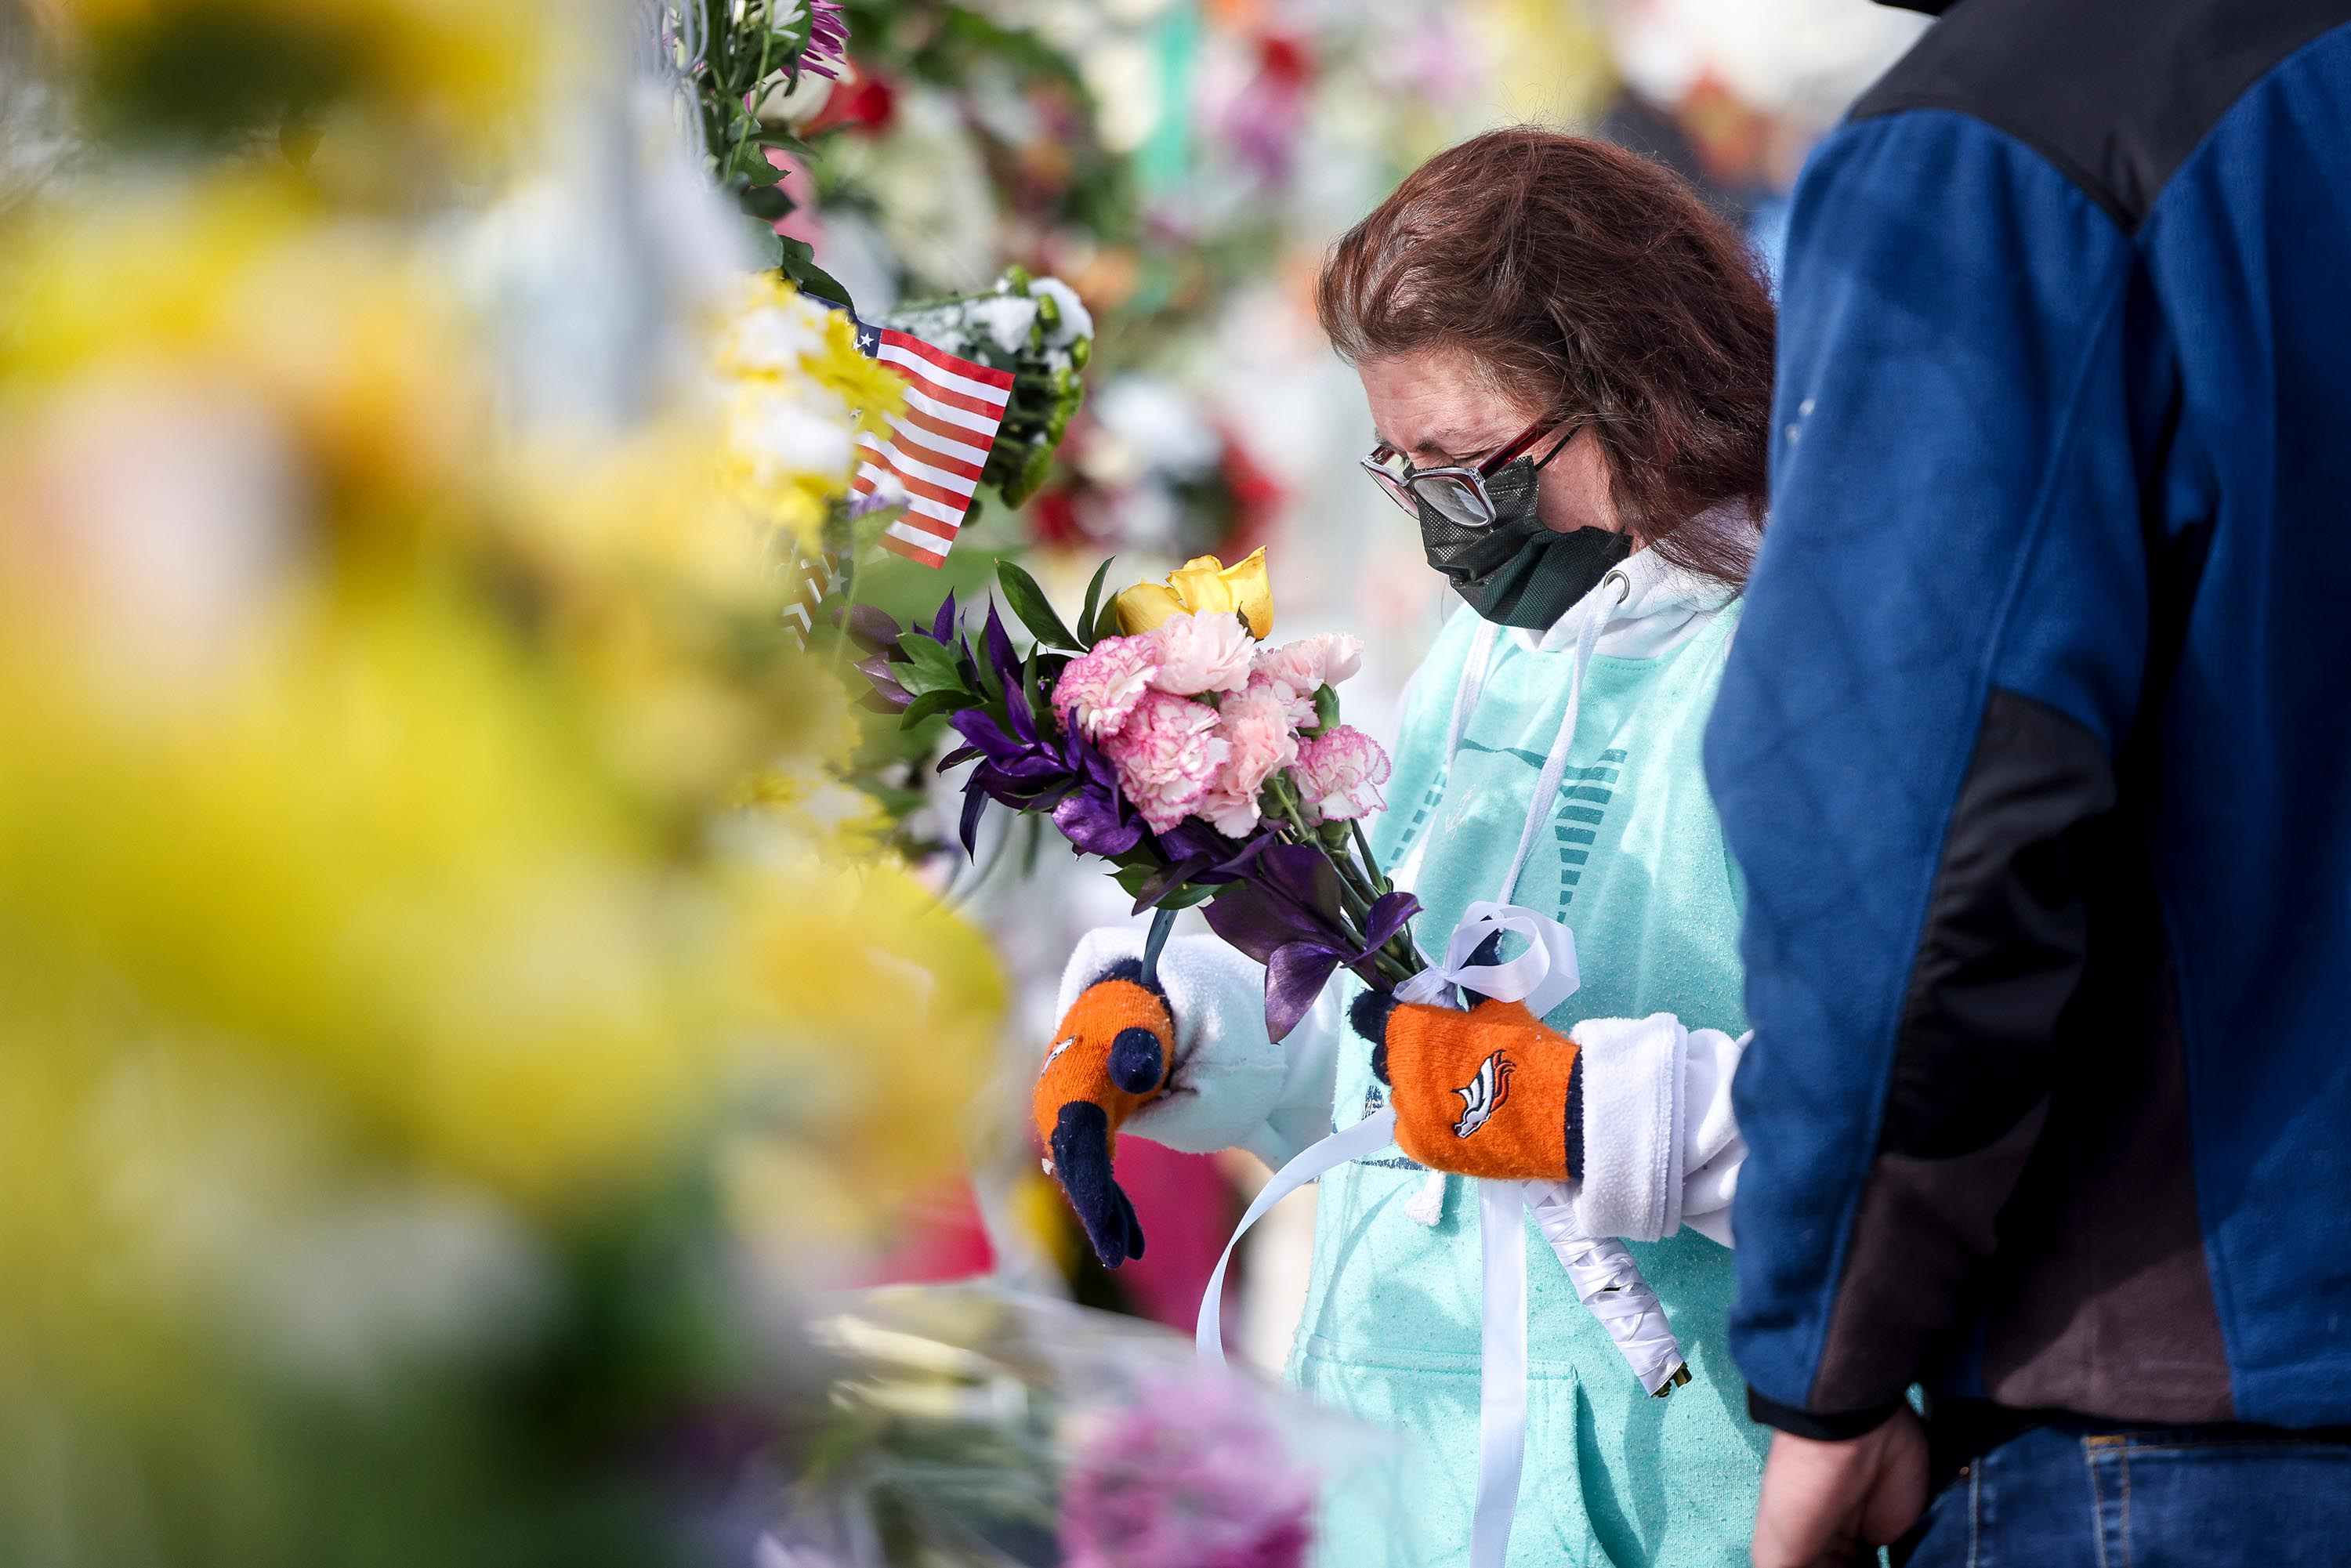 Mourners place flowers at a makeshift memorial for the victims of the attack outside the King Soopers grocery store on March 24, 2021 in Boulder, Colorado.